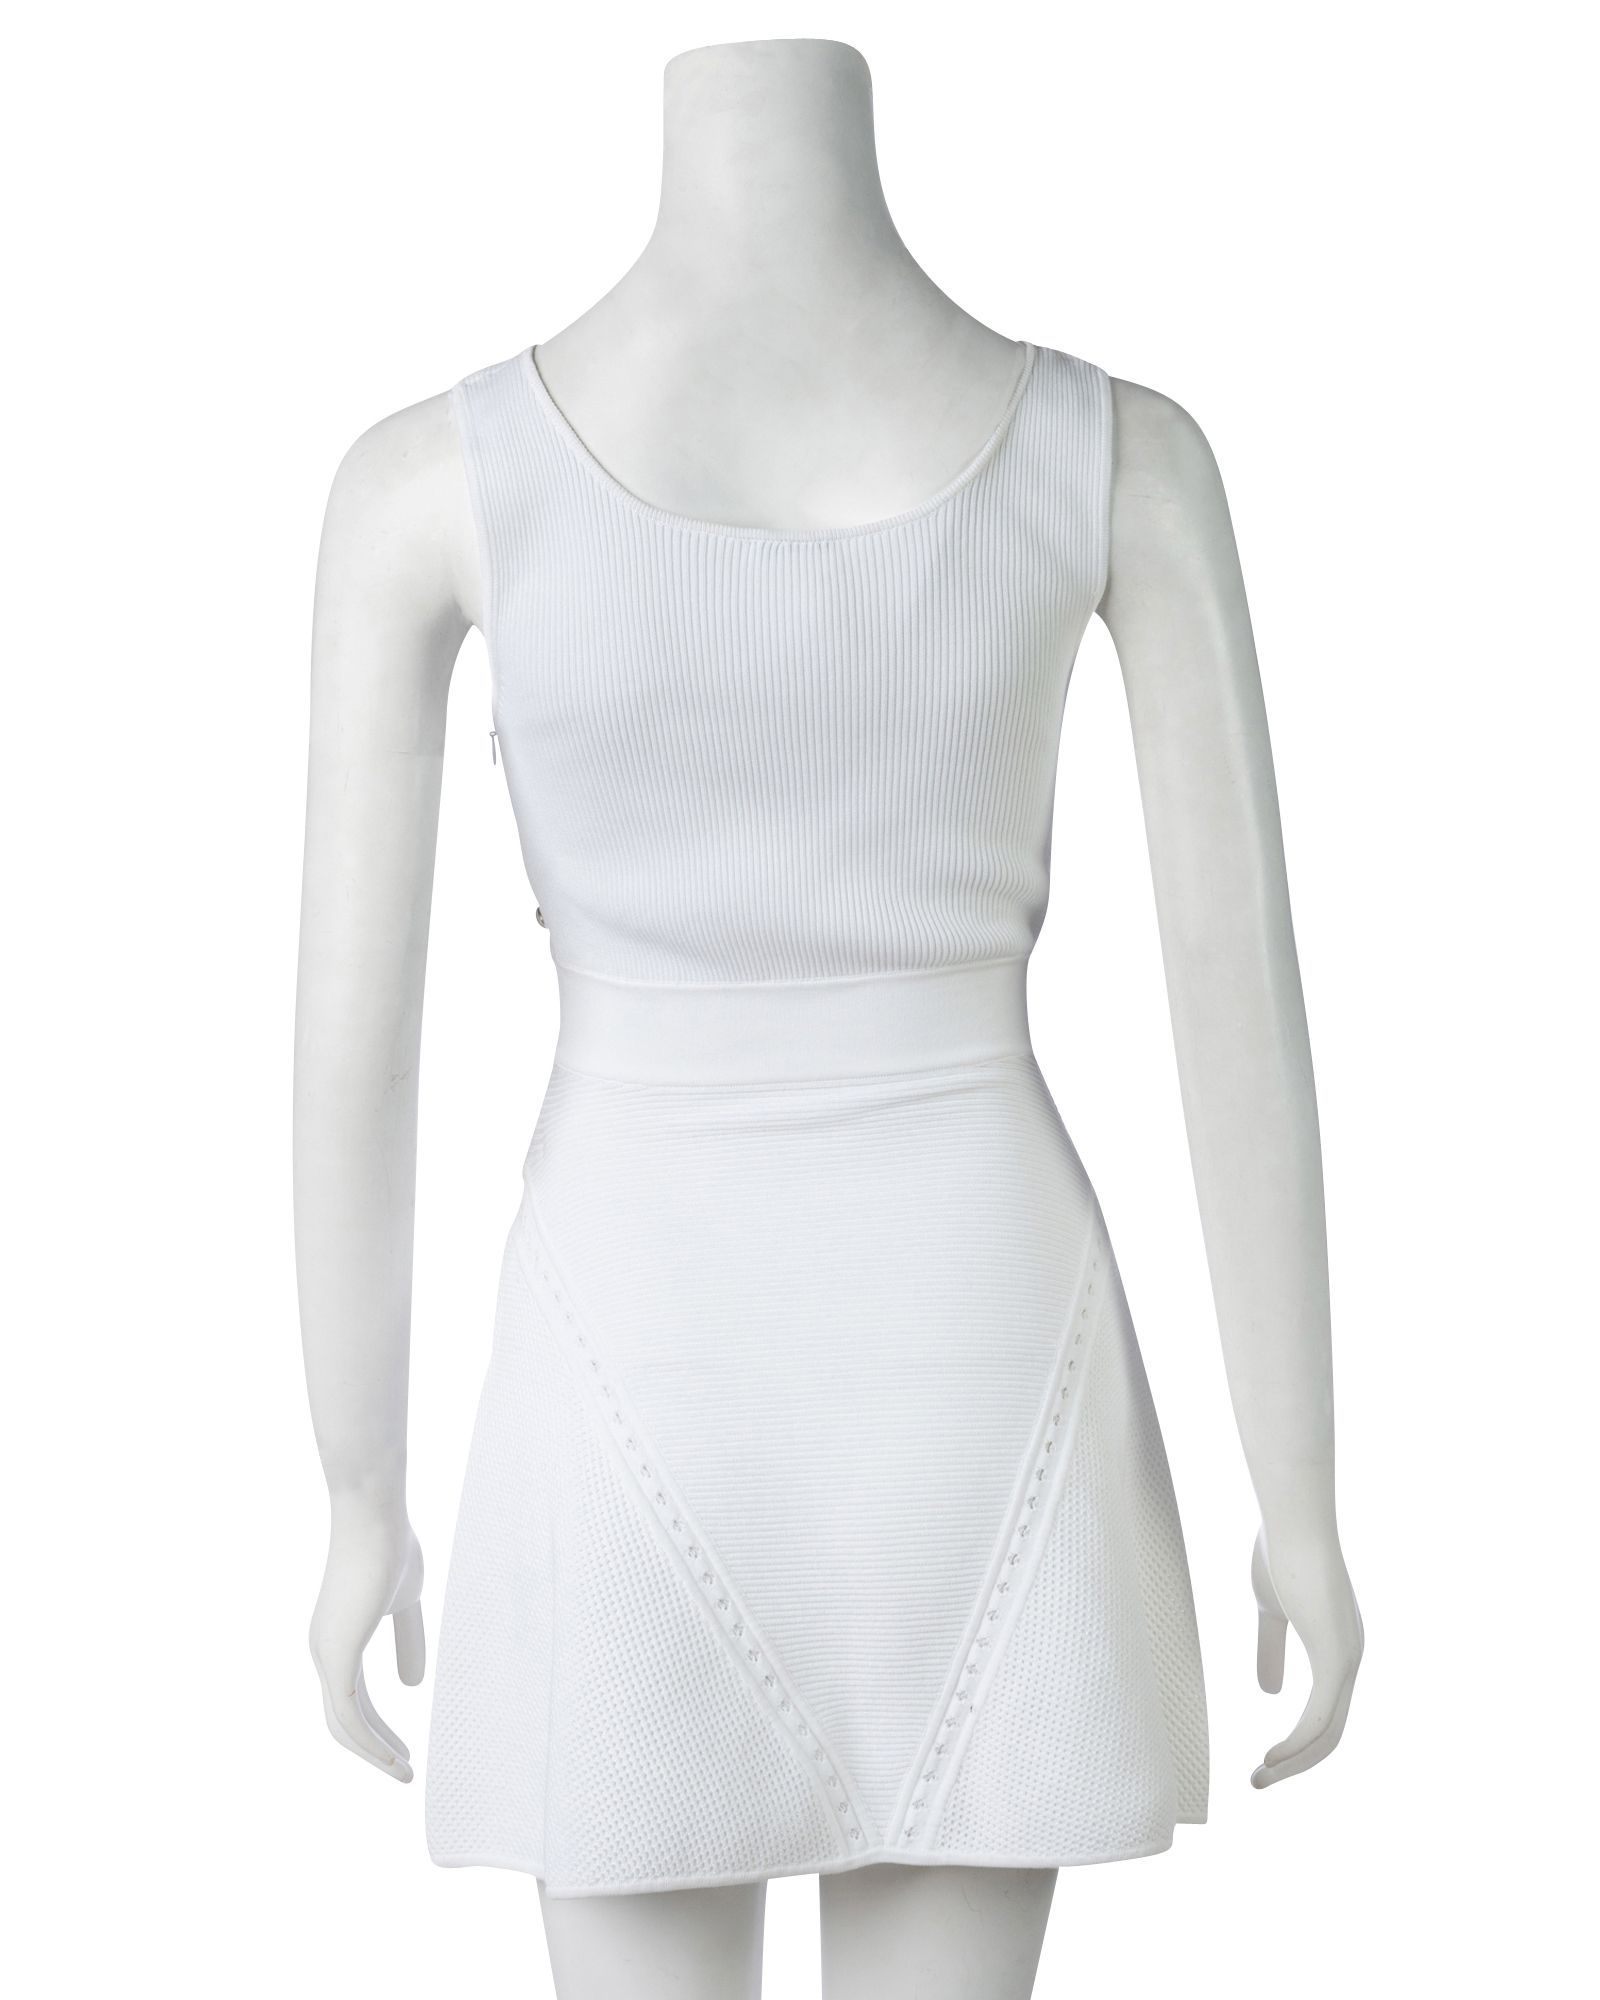 Chanel Dropped Waist Knit Dress -Pre Owned Condition Good